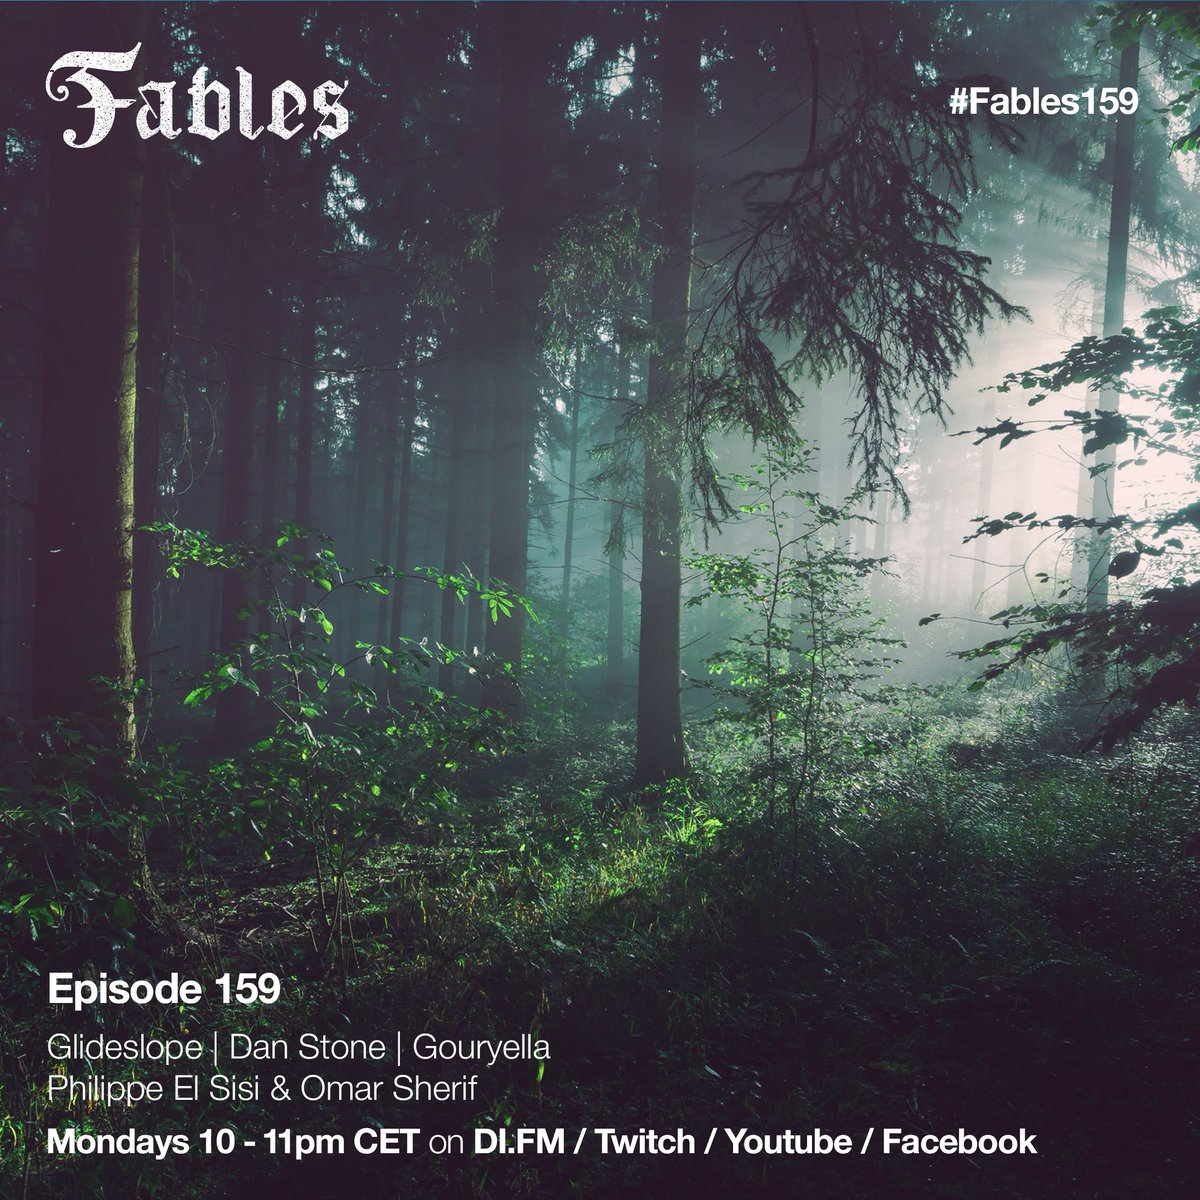 #Fables159 is just around few hours away with new music by @glideslope , @danstonemusic , @GouryellaFC , @Philippeelsisi & @djomarsherif. Don't forget to tune into @difm or watch on https://t.co/5FzonltBYB. https://t.co/yASrEyUZBJ